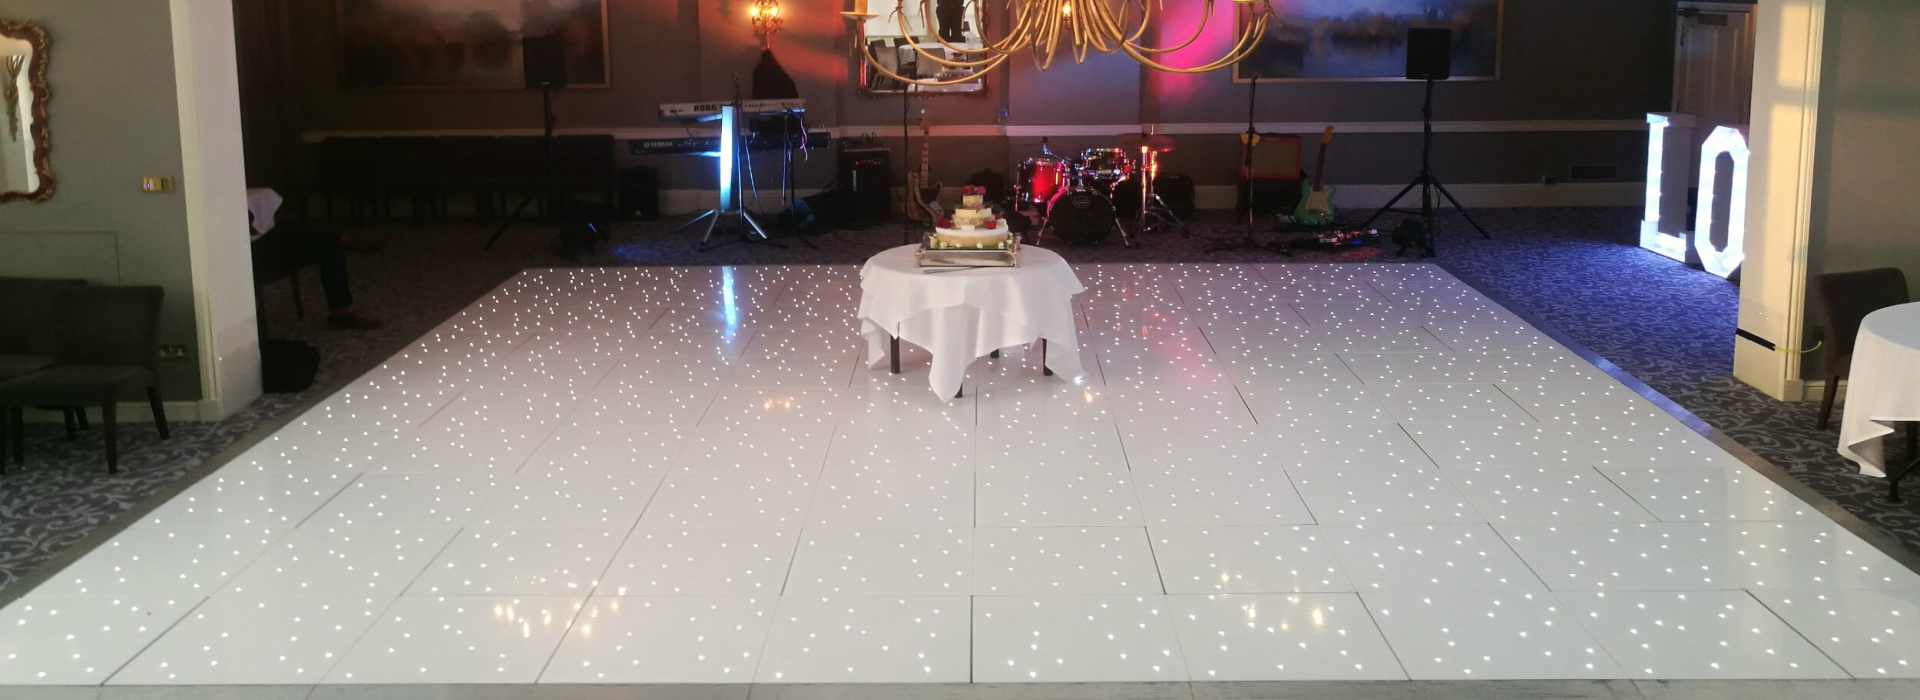 DANCE FLOOR HIRE ST ALBANS